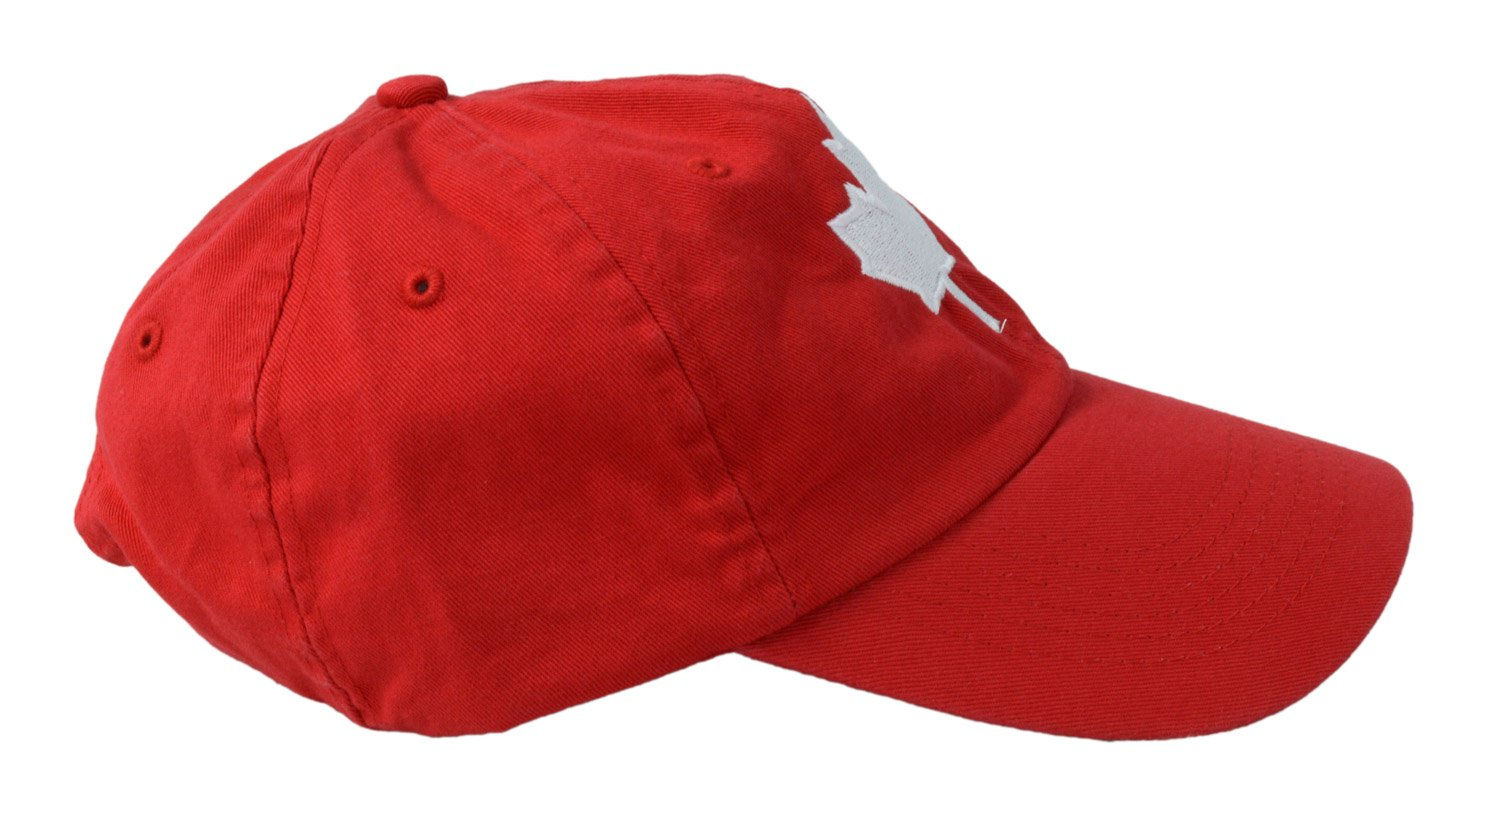 Ann Arbor T-shirt Company Canada Maple Leaf Hat Canadian Pride Embroidered Twill Red Baseball Cap